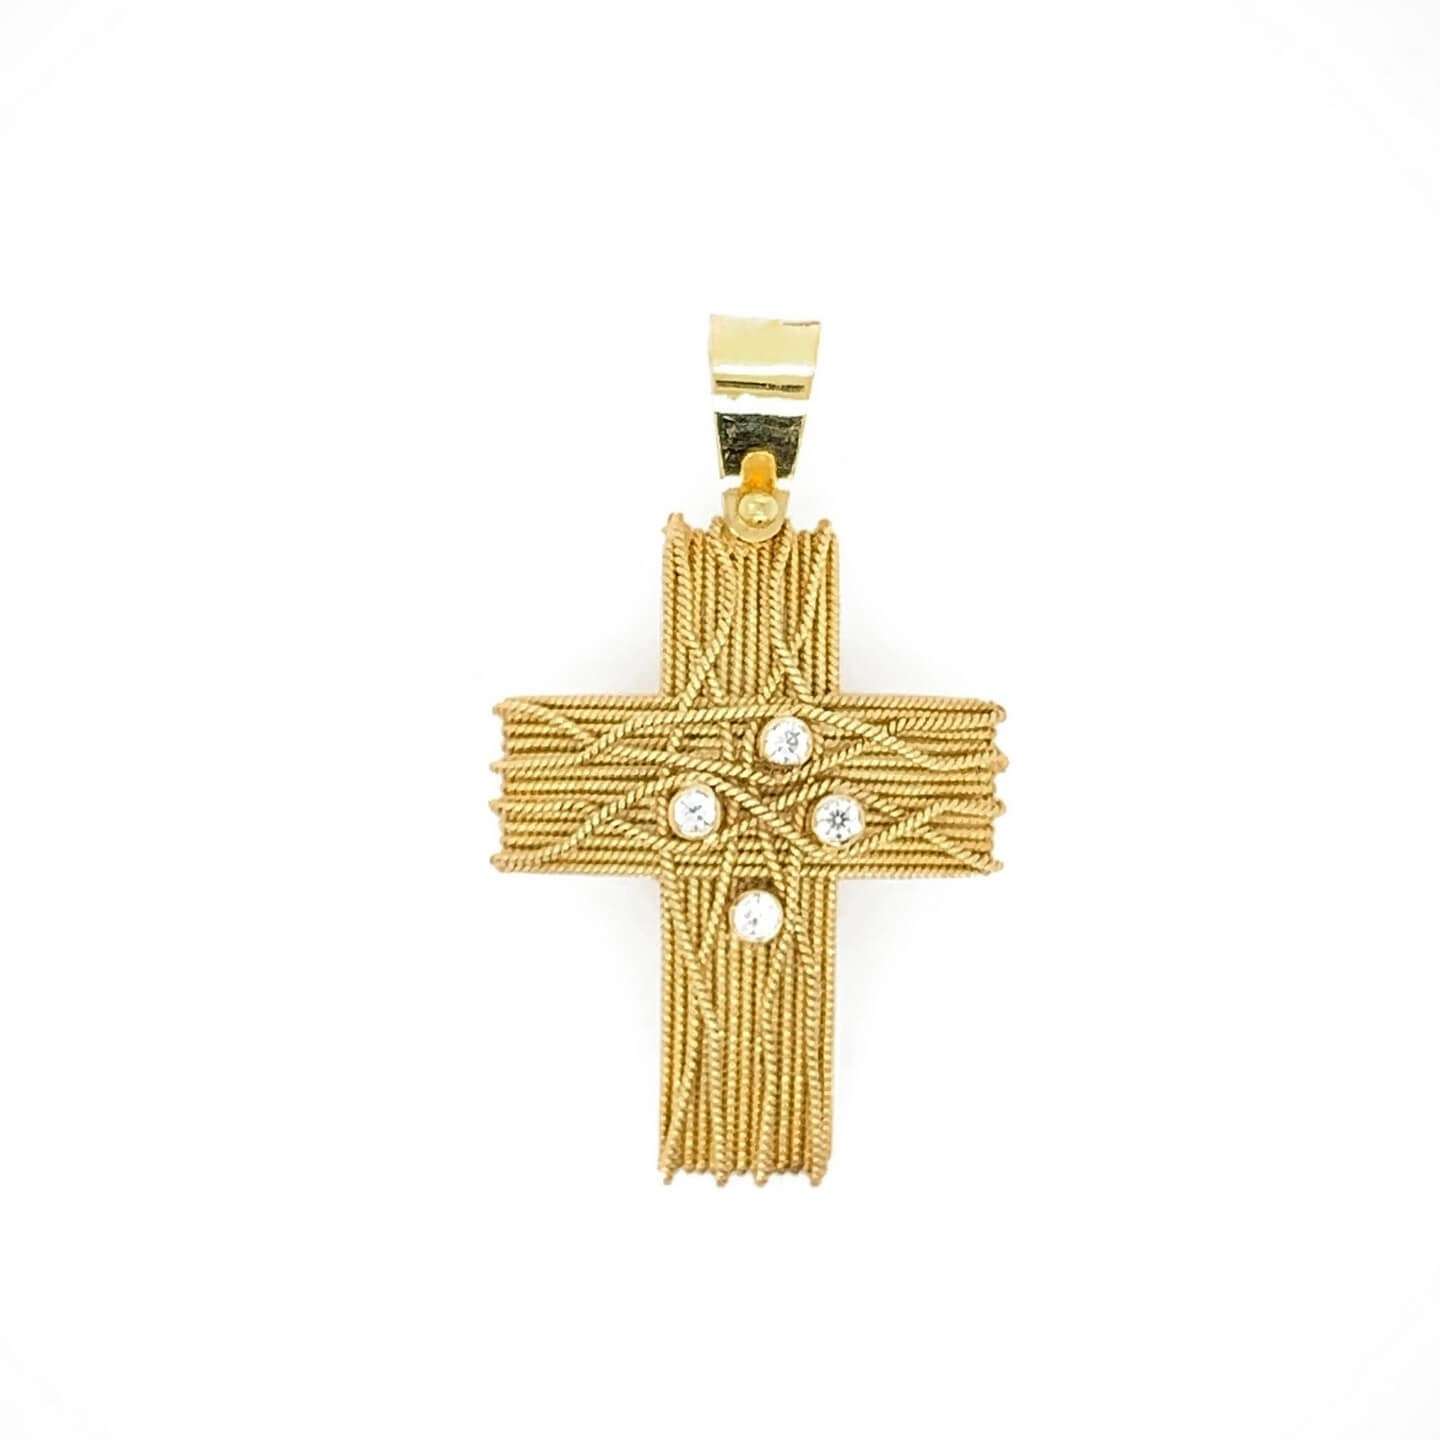 Gold K14 cross decorated with synthetic stones